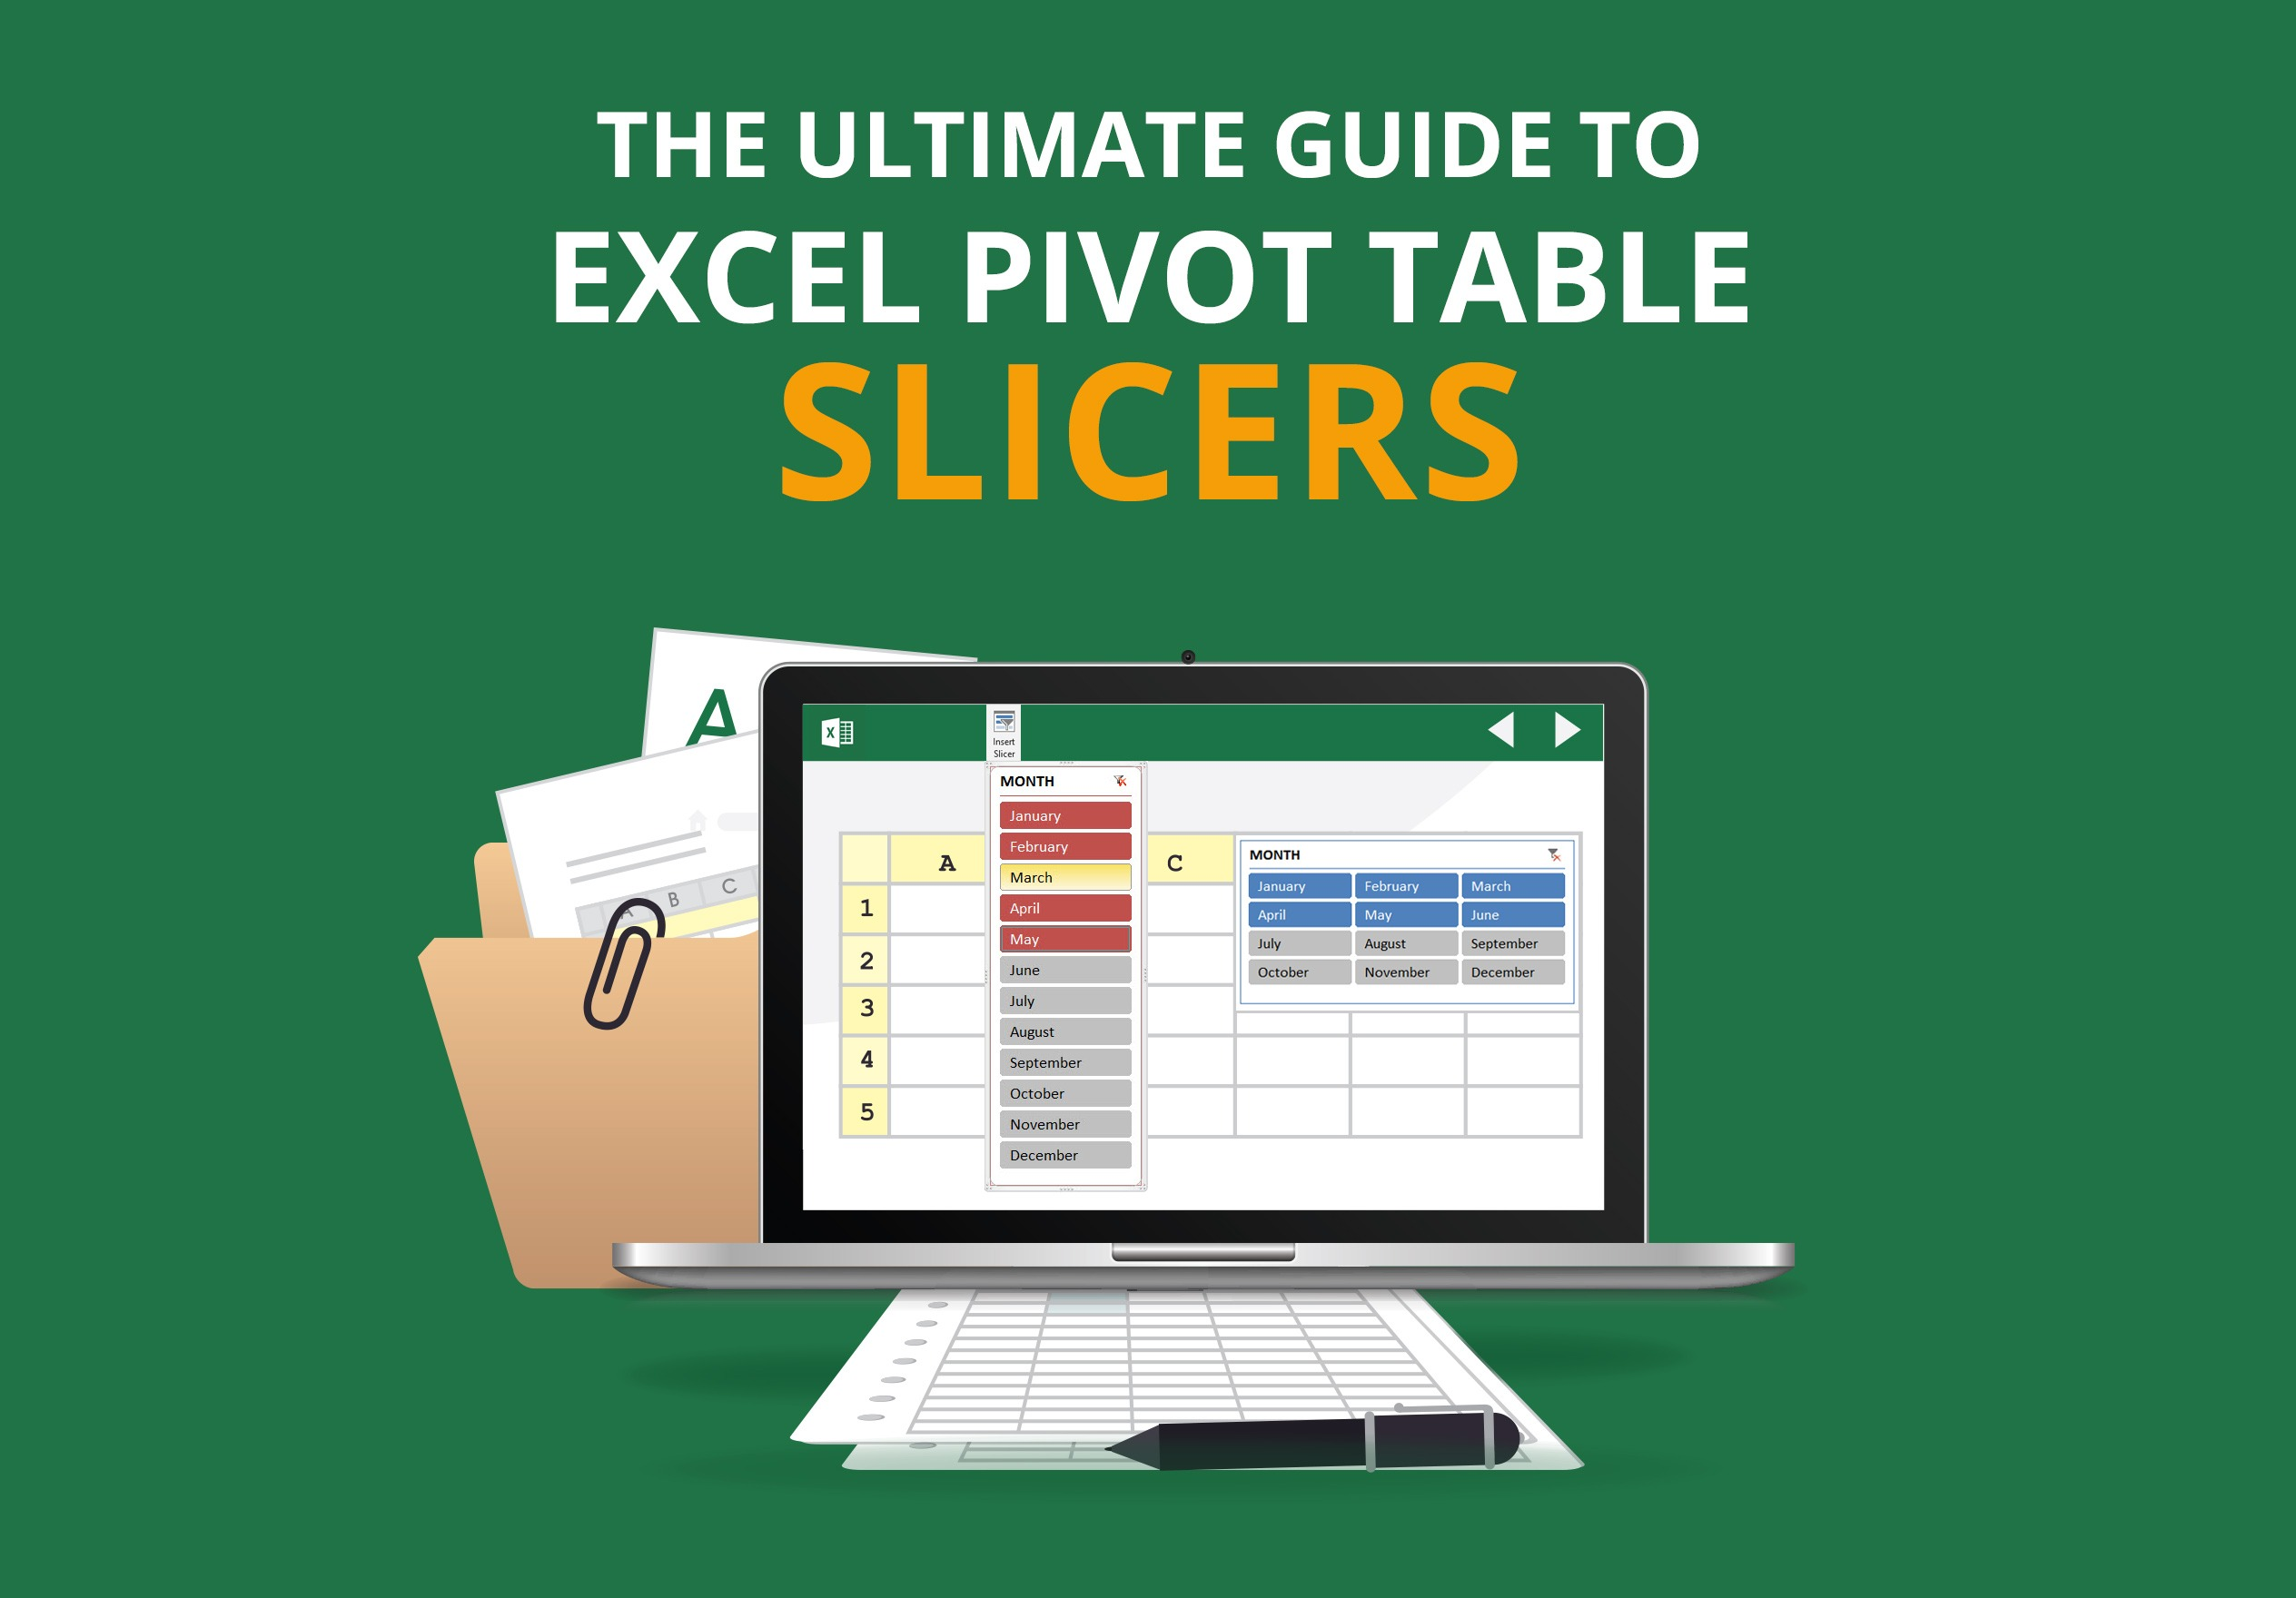 Slicers Were First Introduced In Excel 2010 And They Are A Visual Filter In  The Way Of An Interactive Button There Are Several Cool Things That You  Can Do